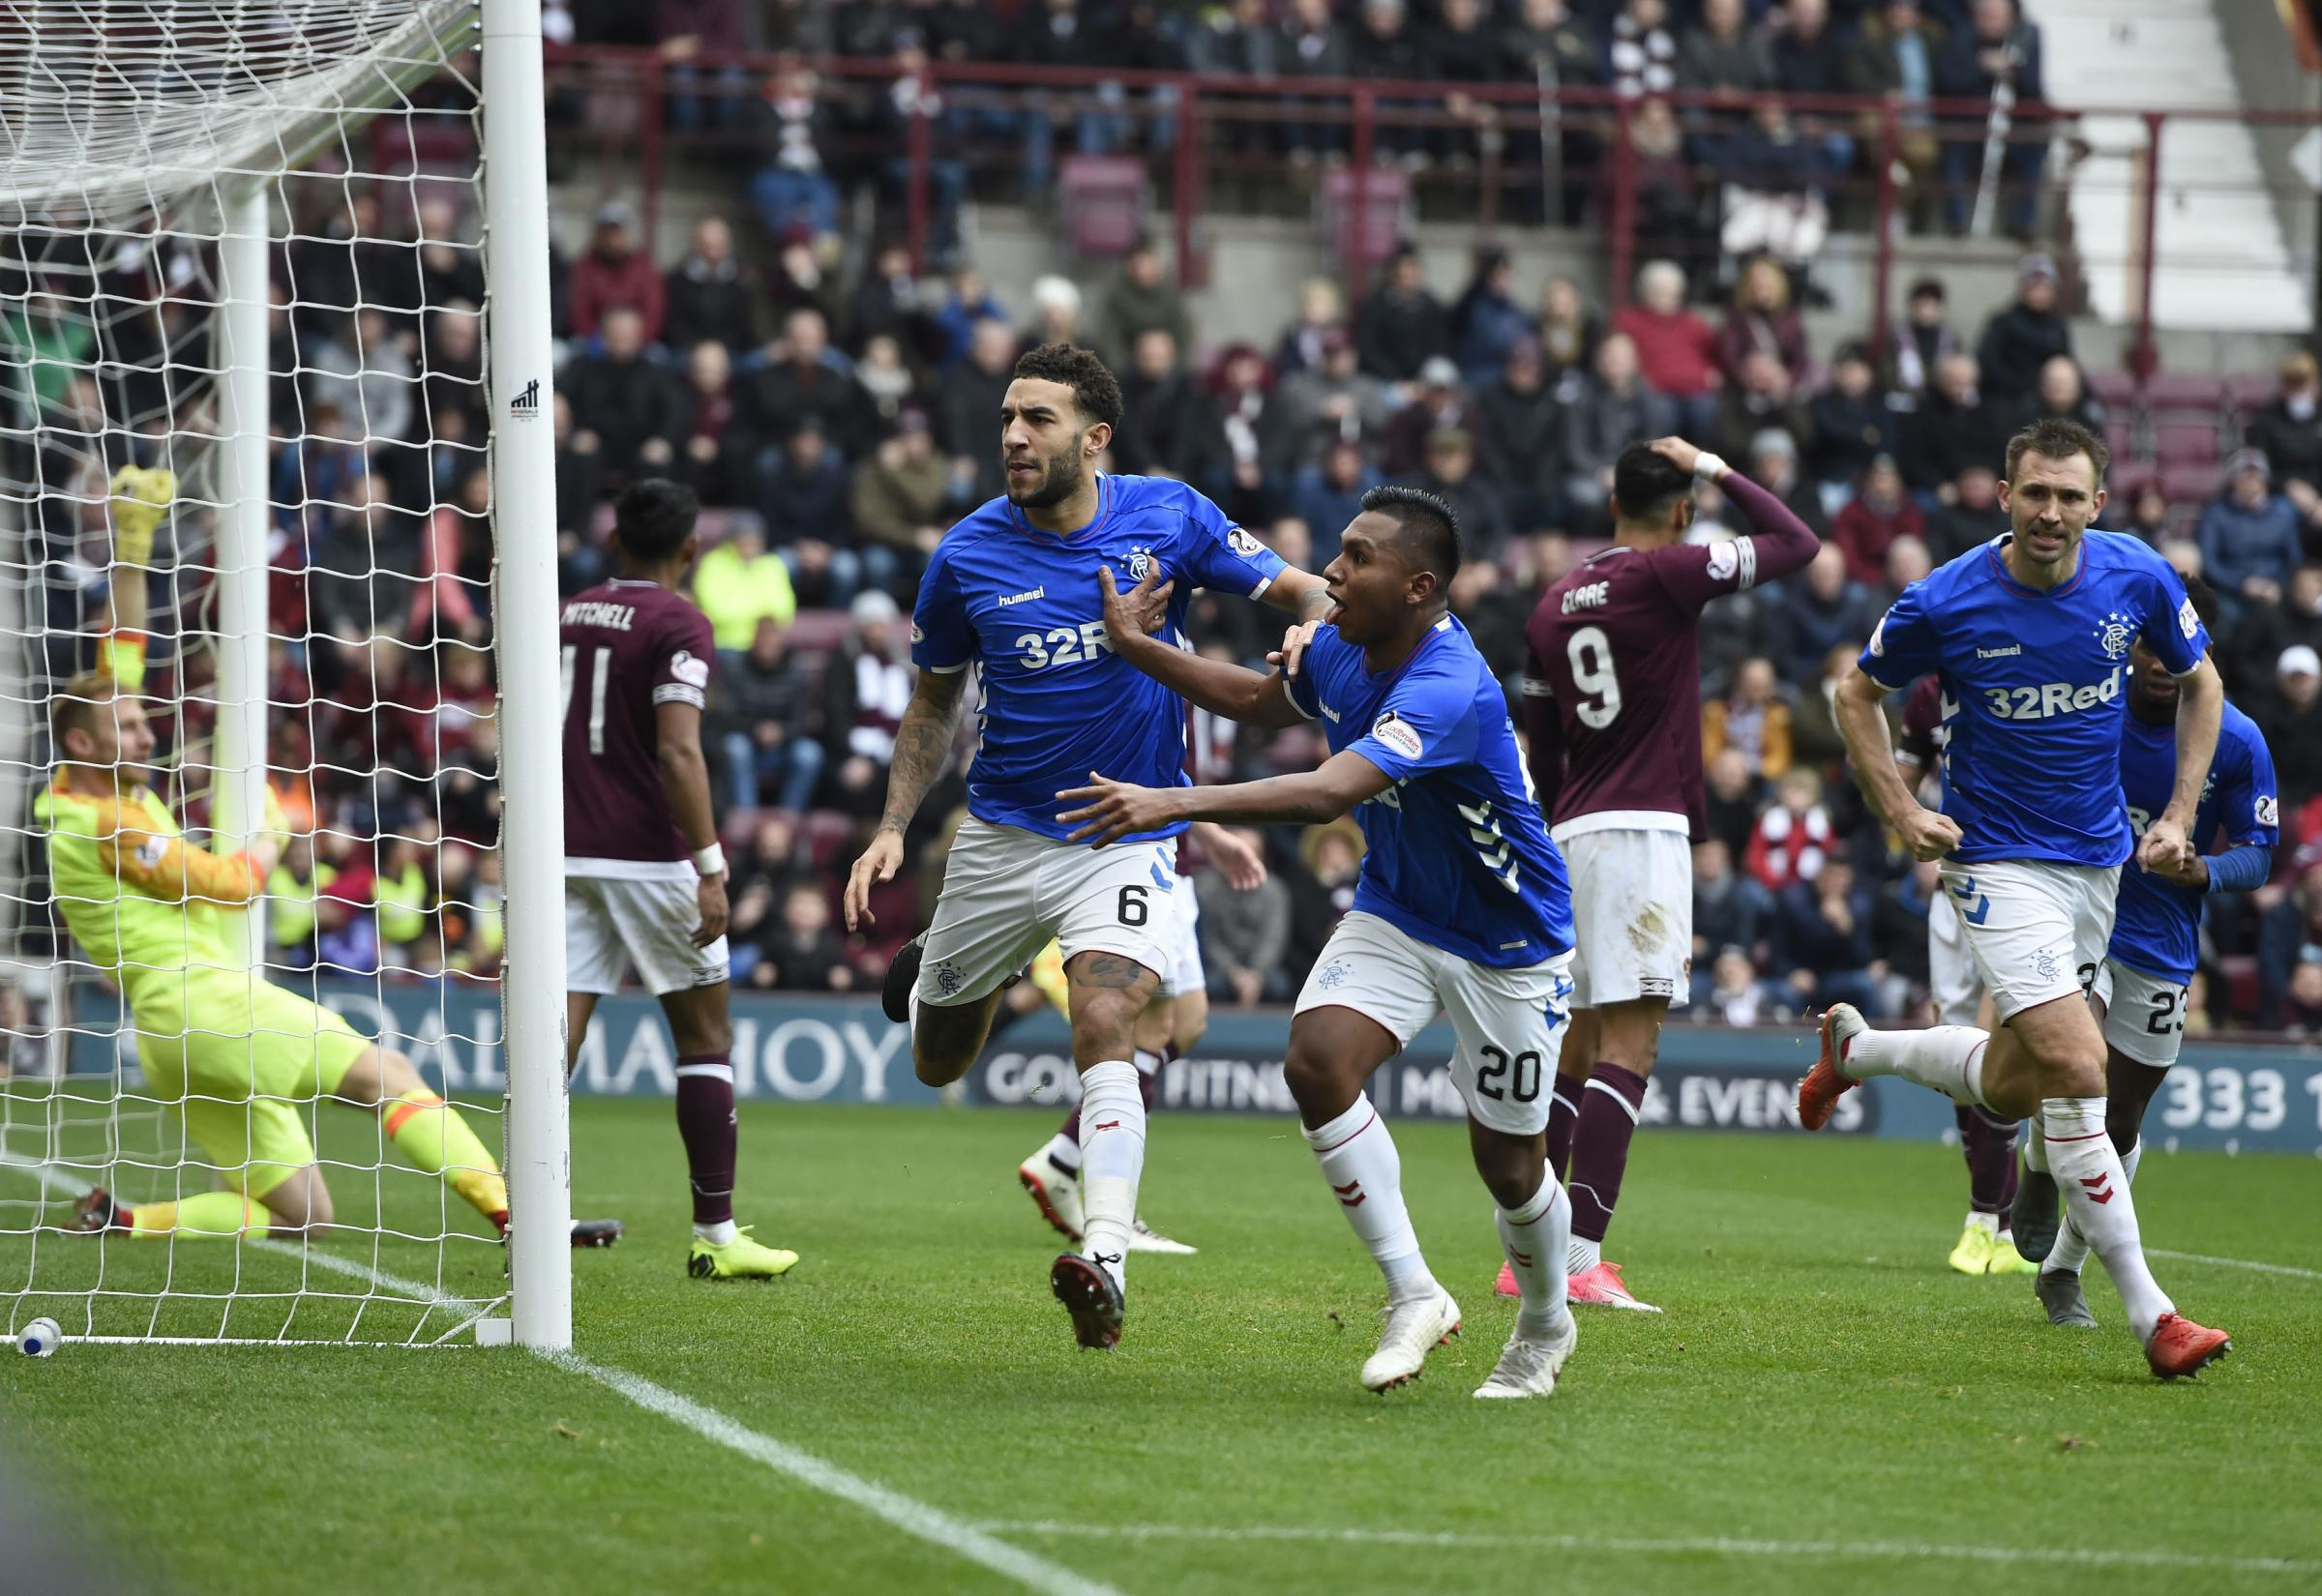 Rangers Connor Goldson celebrates with team-mate Alfredo Morelos in front of the Hearts fans after scoring the first Rangers goal during the Ladbrokes Scottish Premiership match at Tynecastle Stadium, Edinburgh. PRESS ASSOCIATION Photo. Picture date: Sund